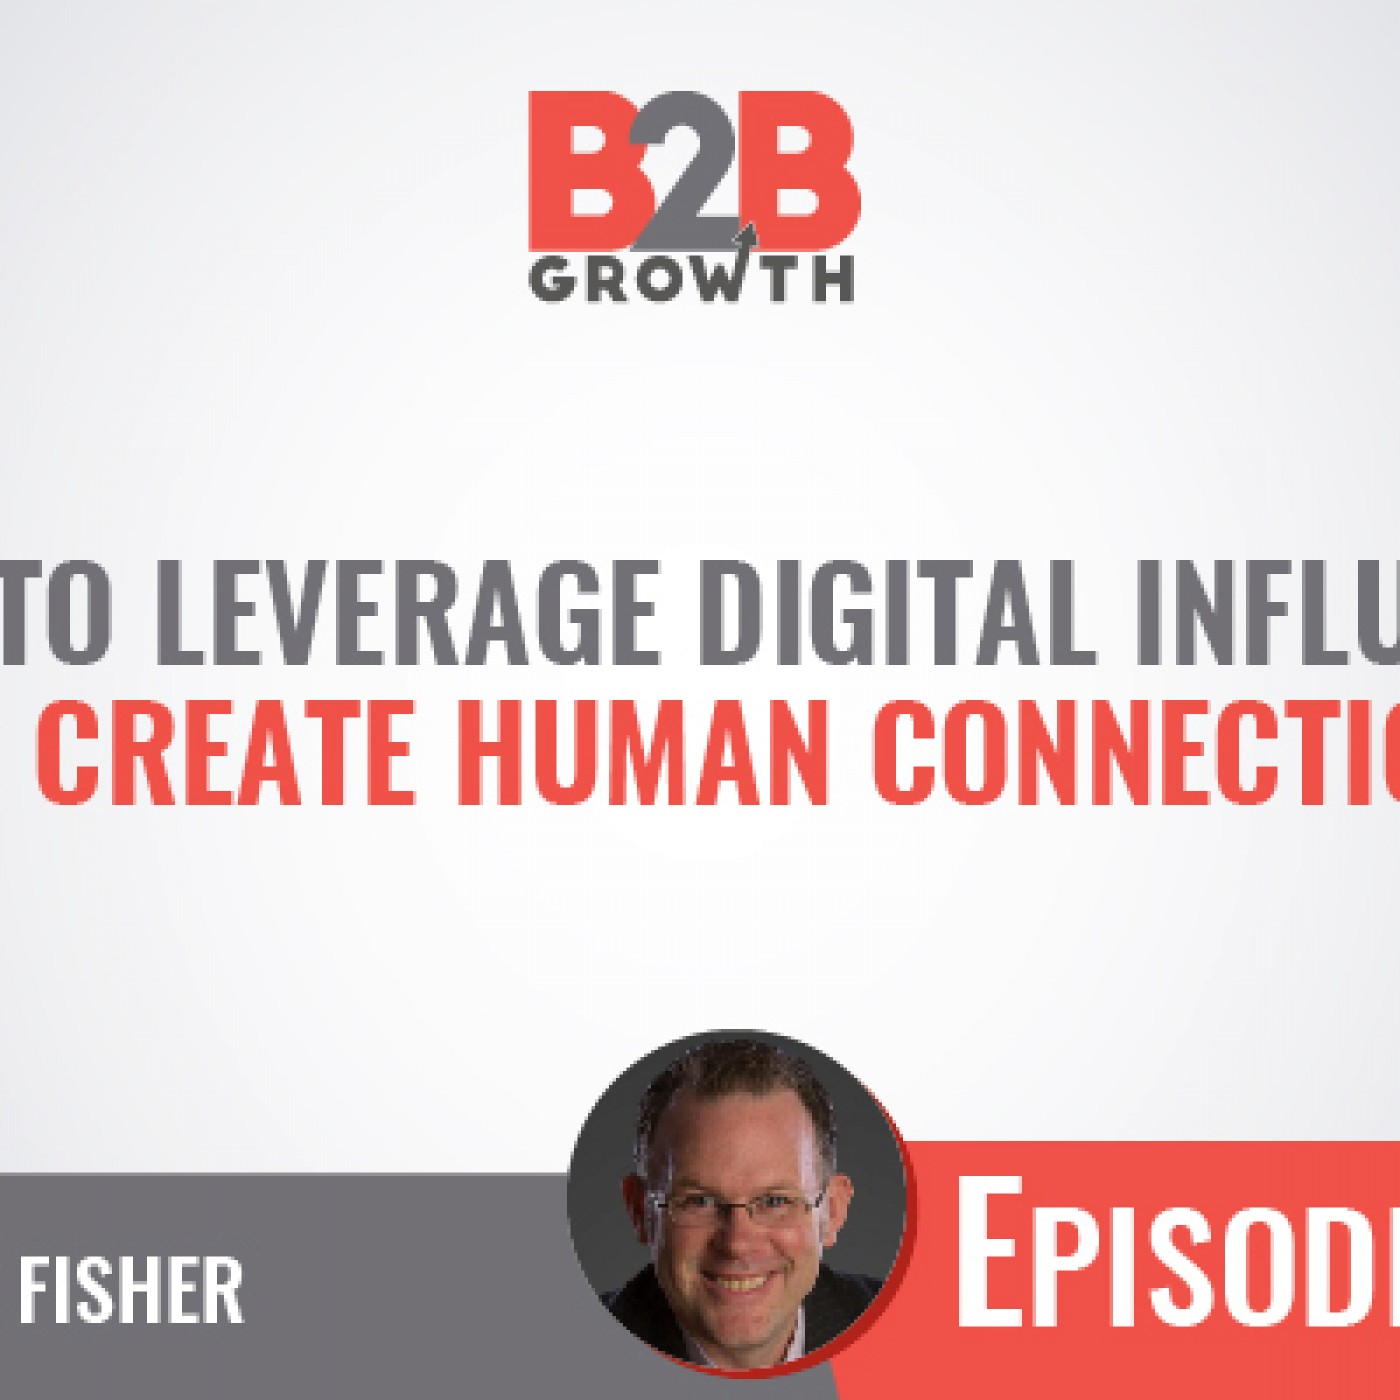 533: How to Leverage Digital Influence to Create Human Connection w/ David Fisher